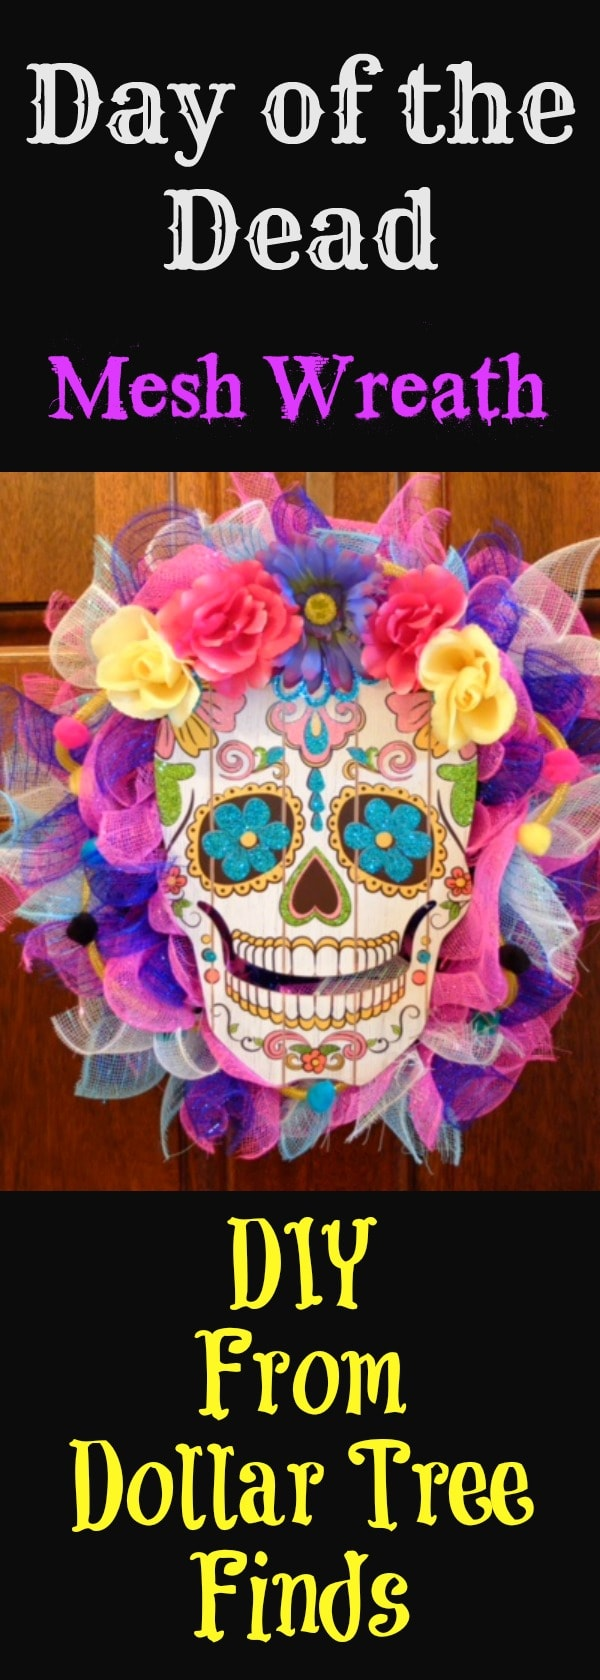 Day of the Dead Mesh Wreath…DIY From Dollar Tree Finds